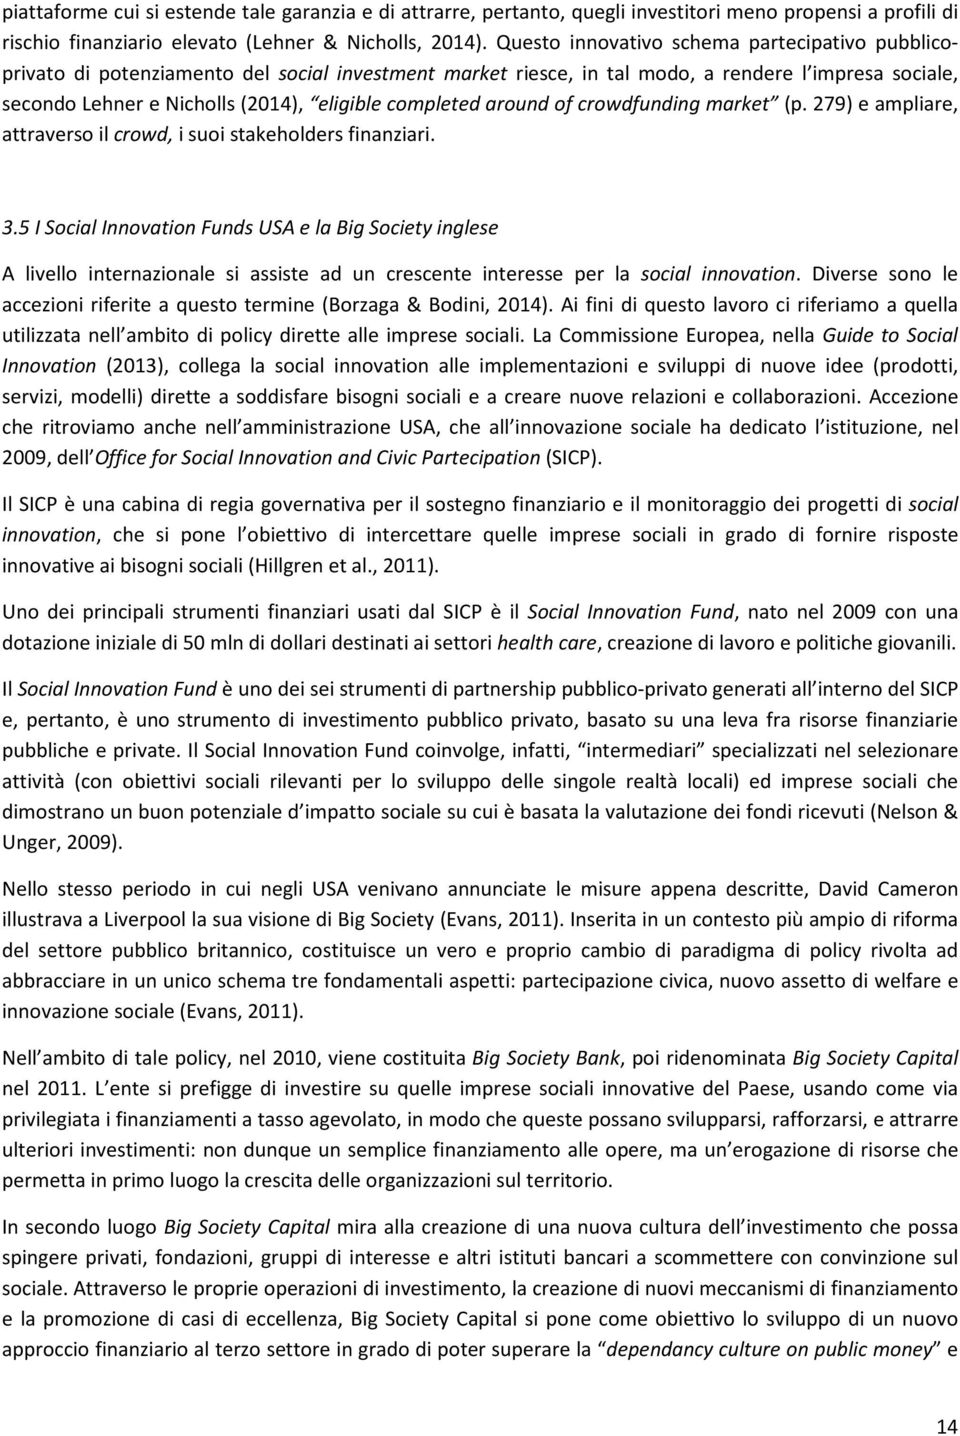 completed around of crowdfunding market (p. 279) e ampliare, attraverso il crowd, i suoi stakeholders finanziari. 3.